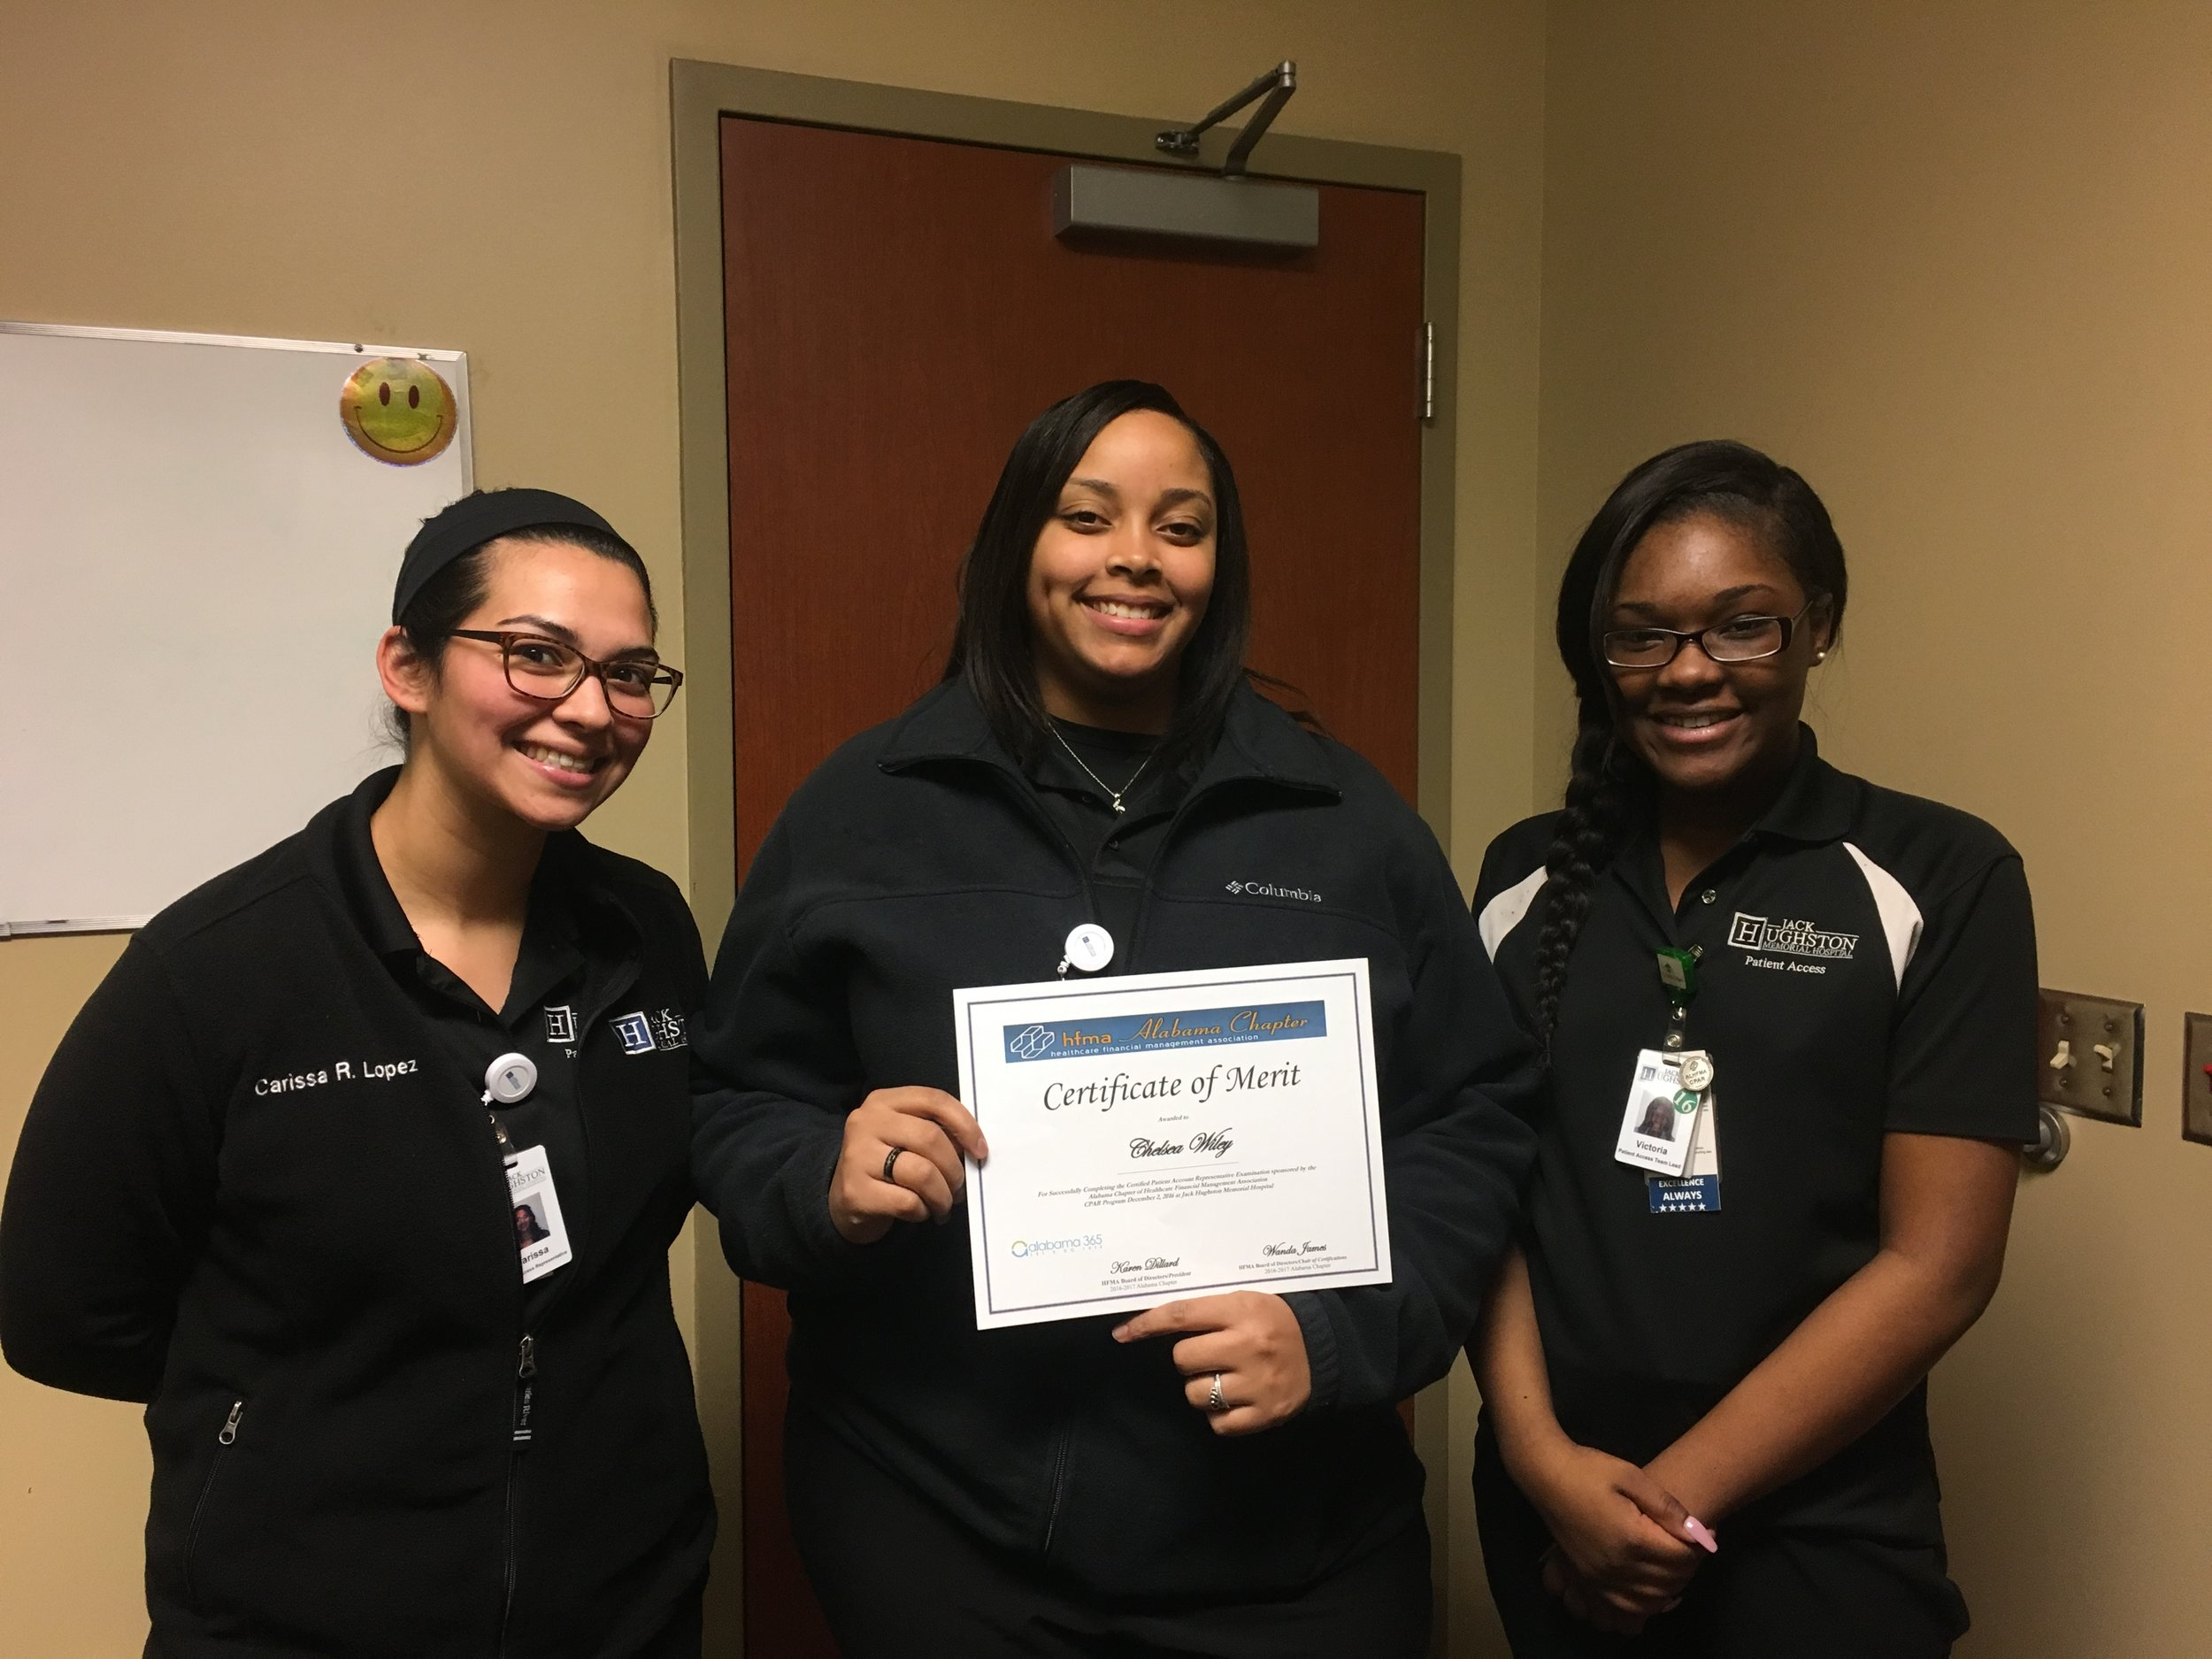 Carissa Ramos-Lopez, Chelsea Wiley, Victoria Dozier earned their CPAR at the Phenix City testing site in December